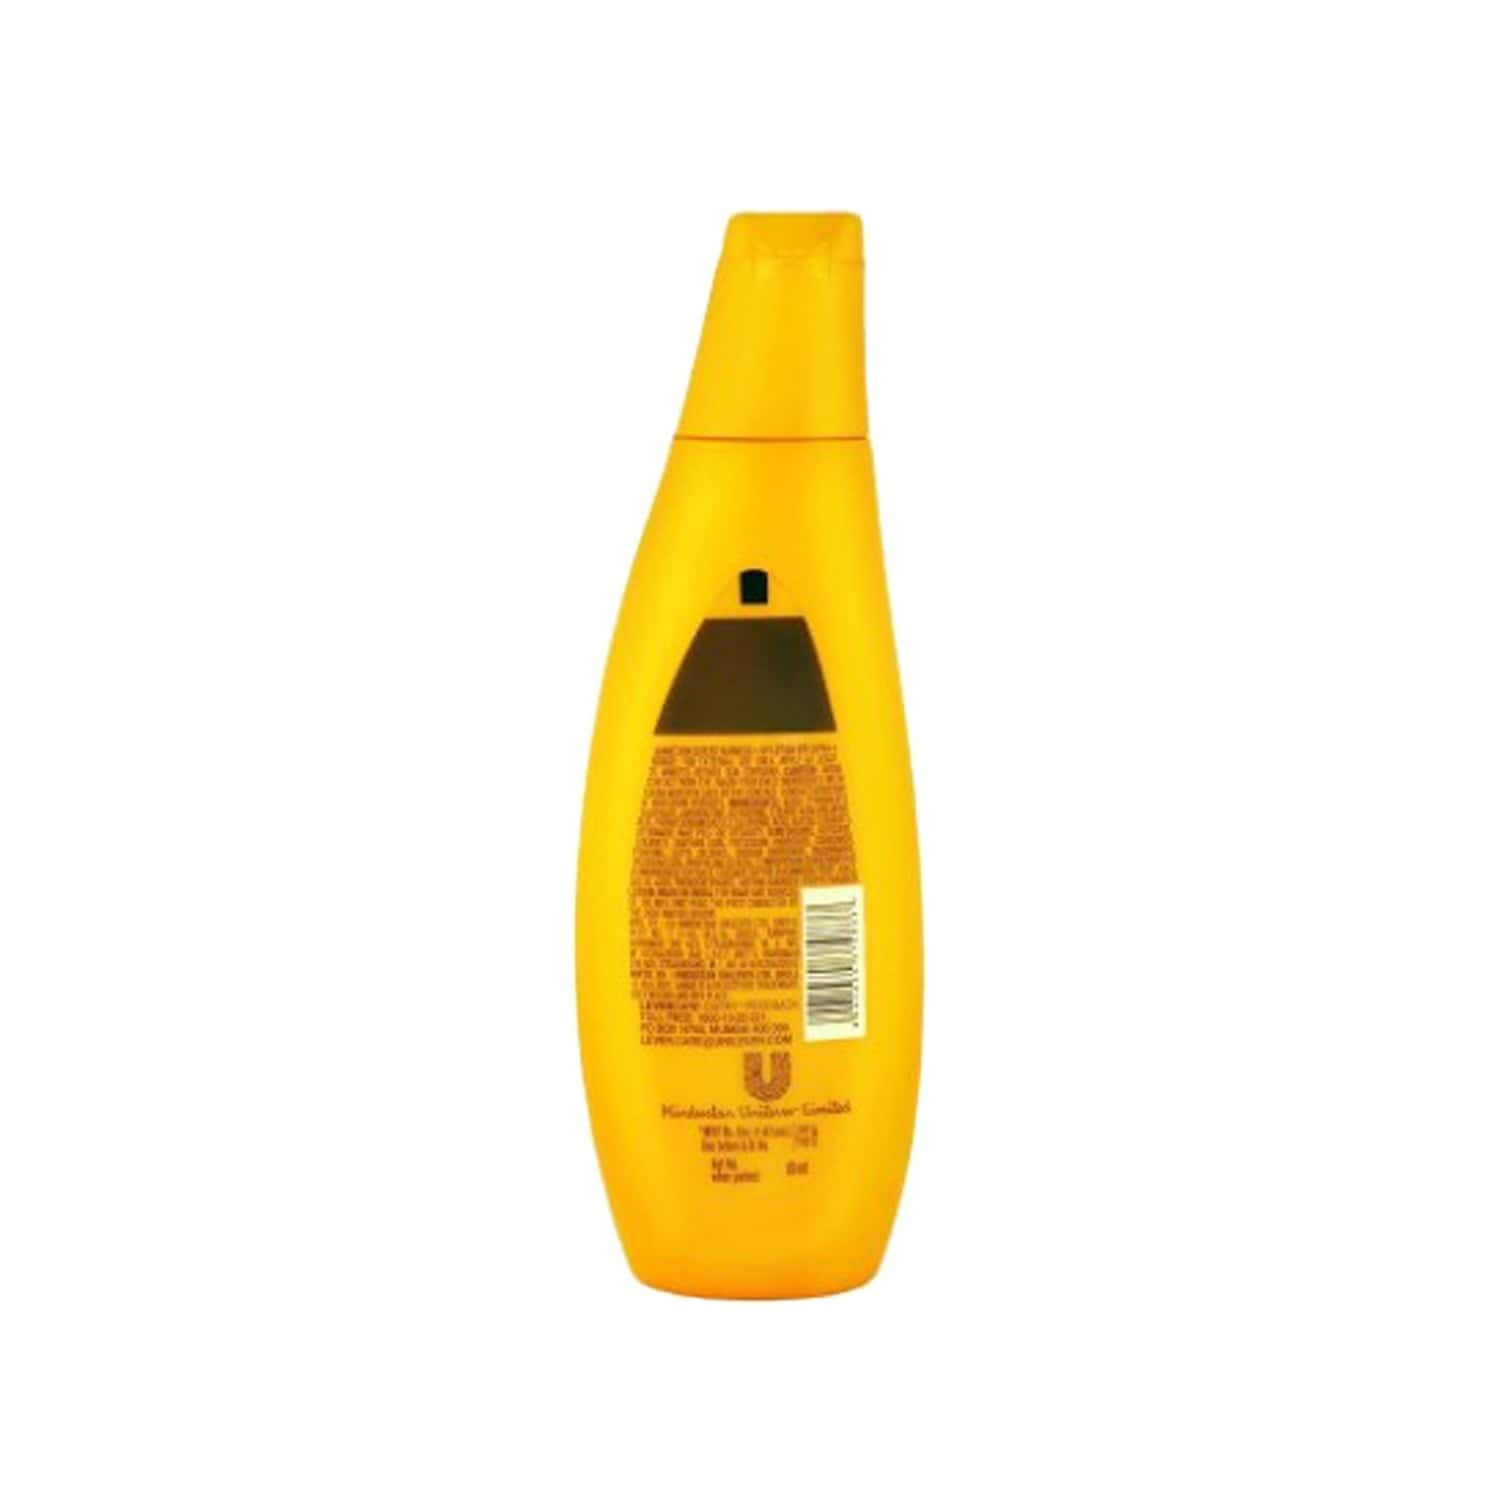 Lakme Sun Expert Fairness Uv Sunscreen Lotion, Spf 24 Pa 60 Ml